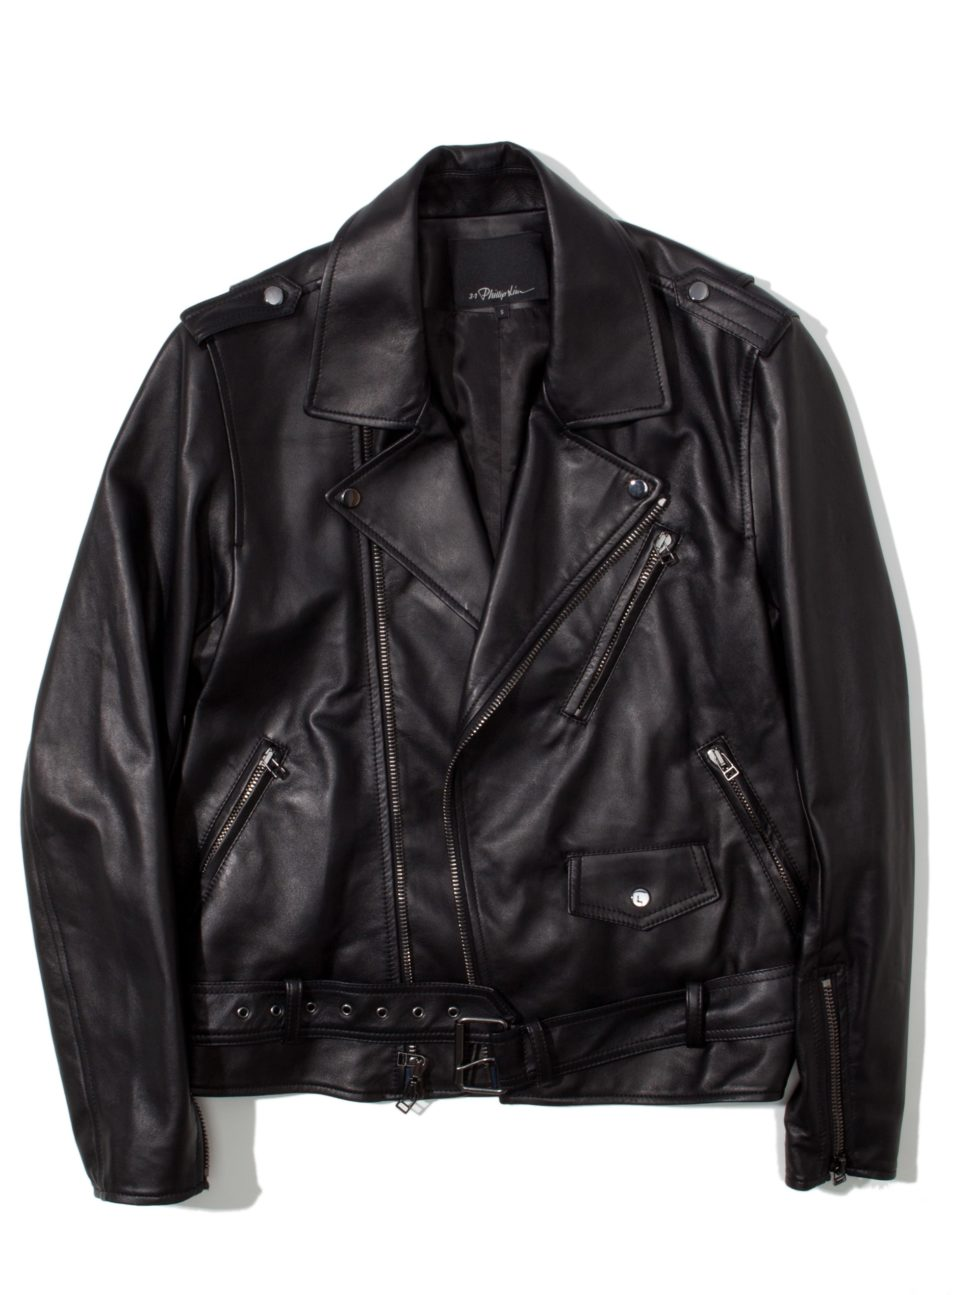 3.1 Phillip Lim Lamb Leather Motorcycle Jacket